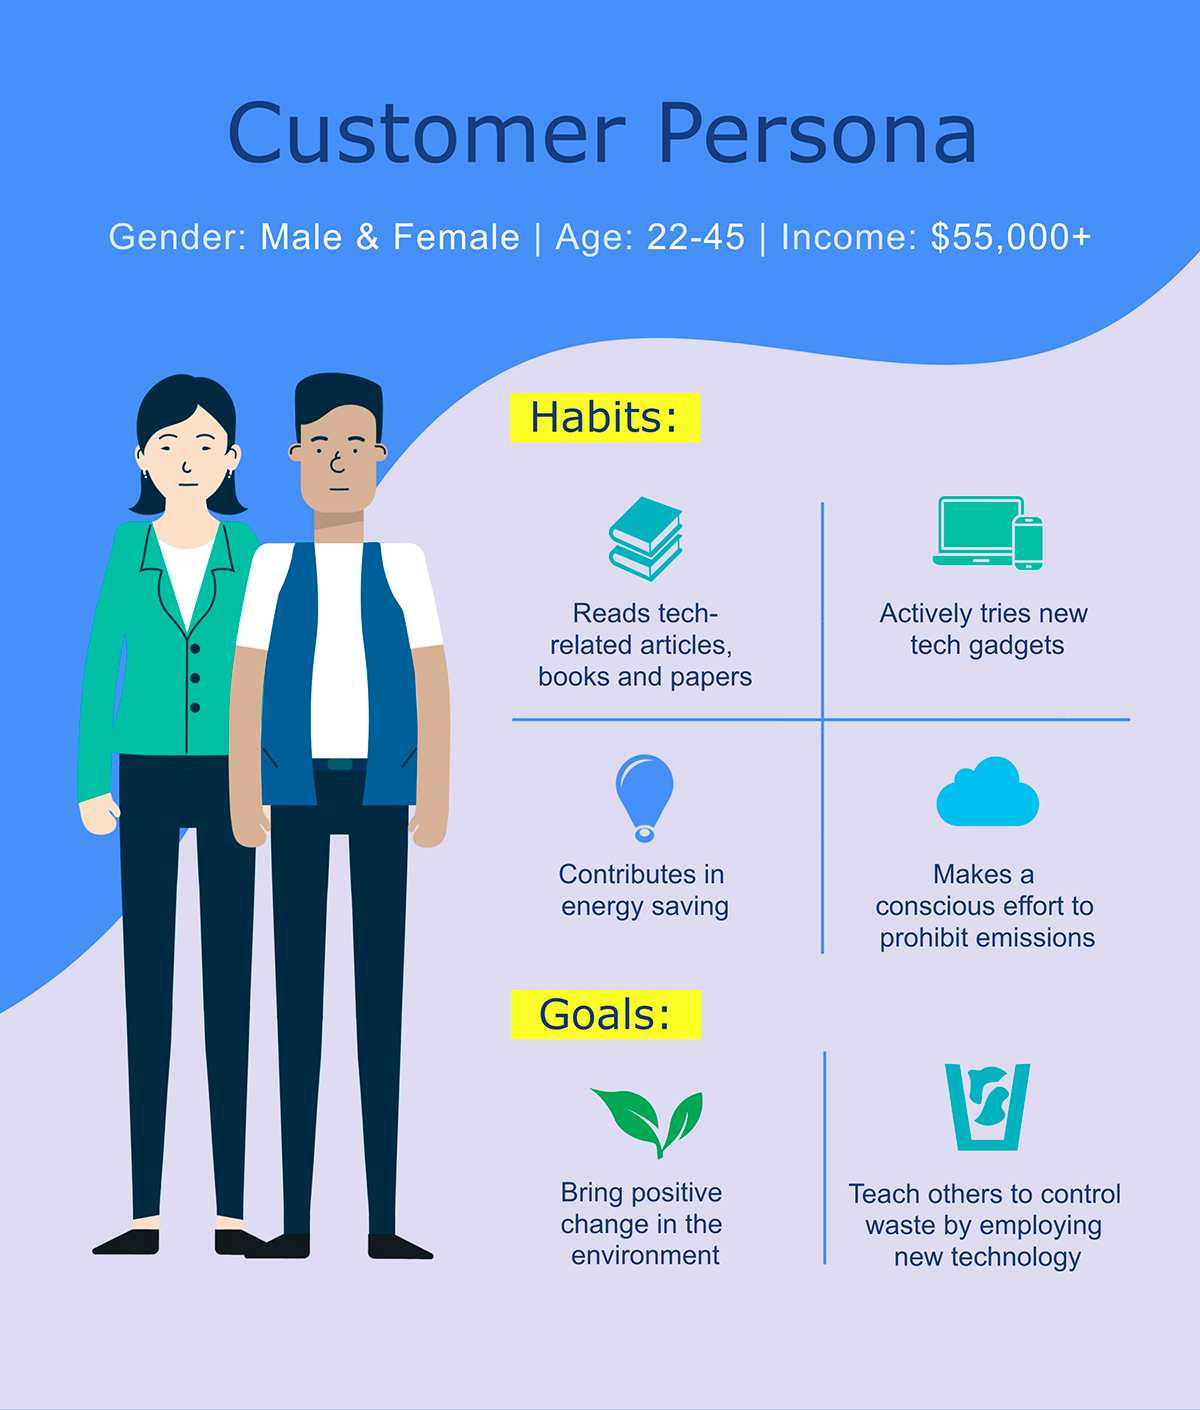 A customer persona template available in Visme.